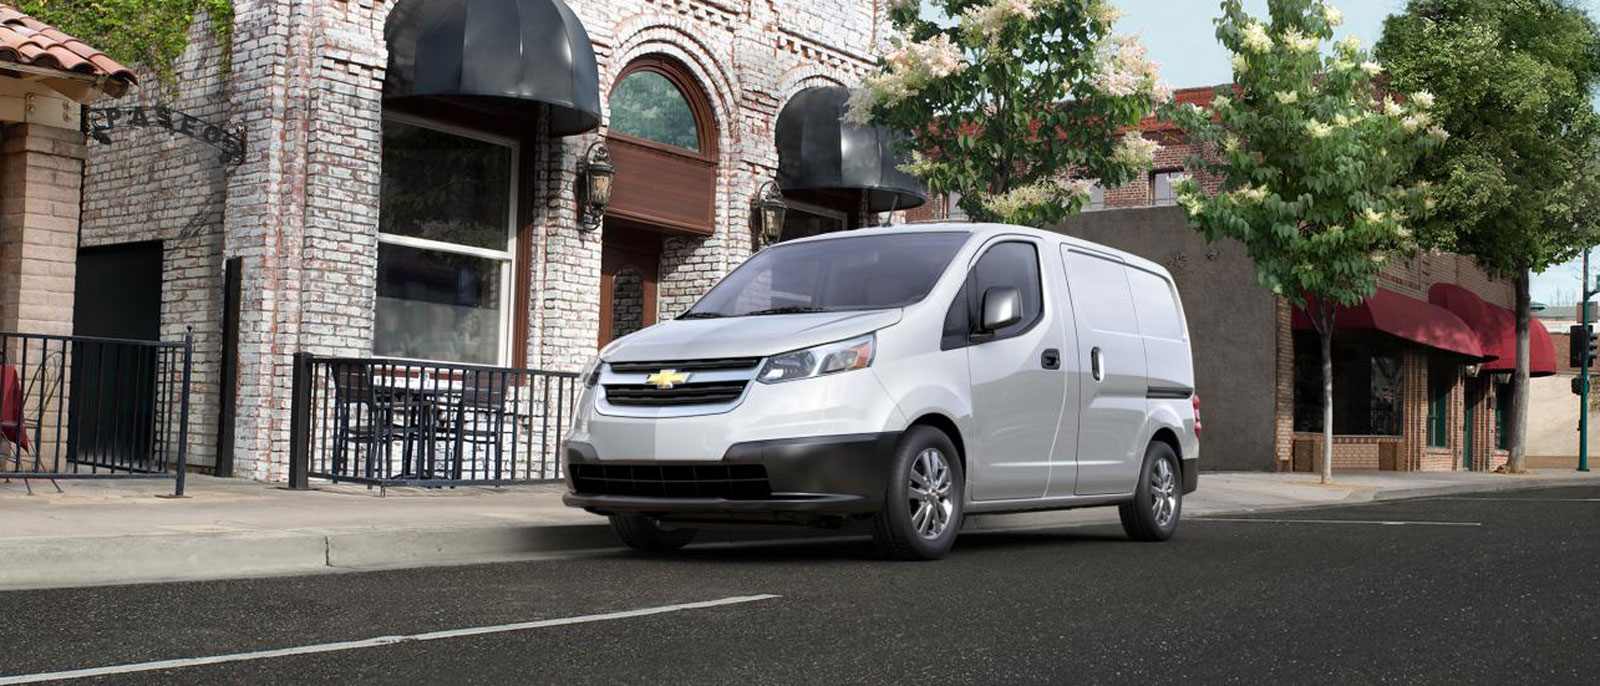 2016 Chevrolet City Express front view